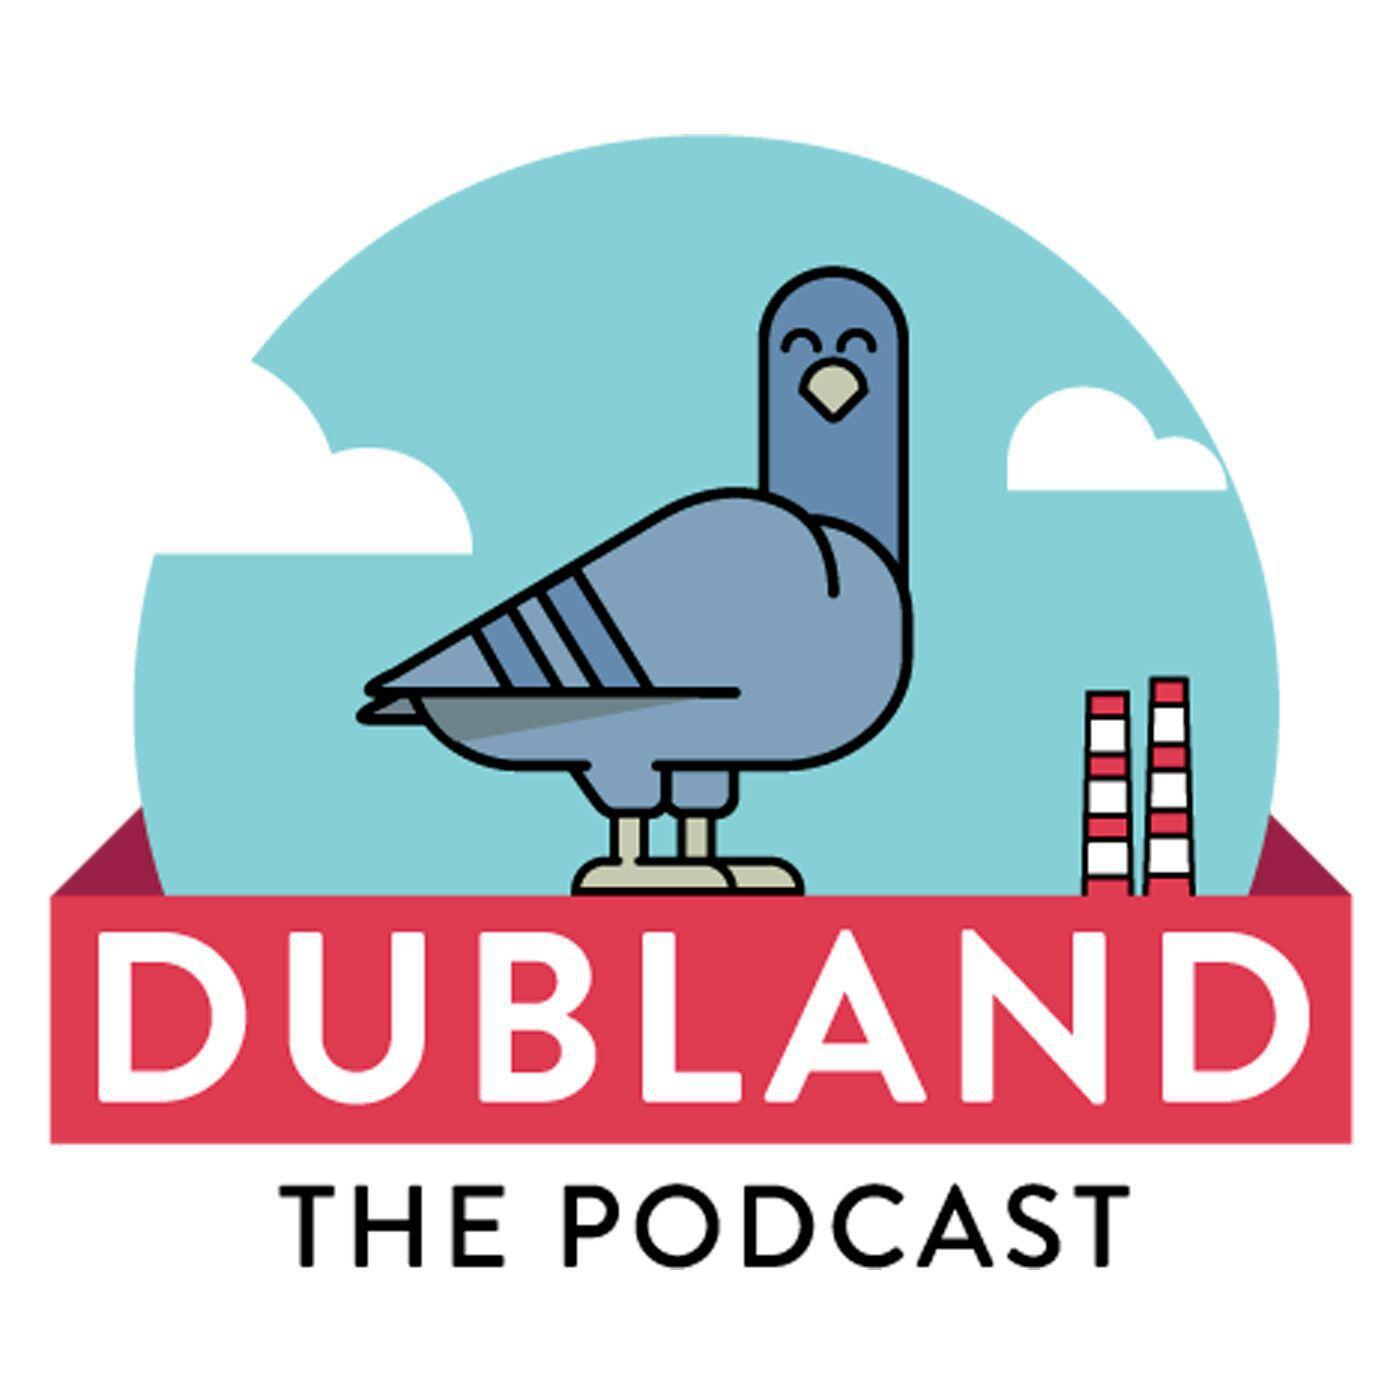 DUBLAND THE PODCAST EPISODE SEVEN